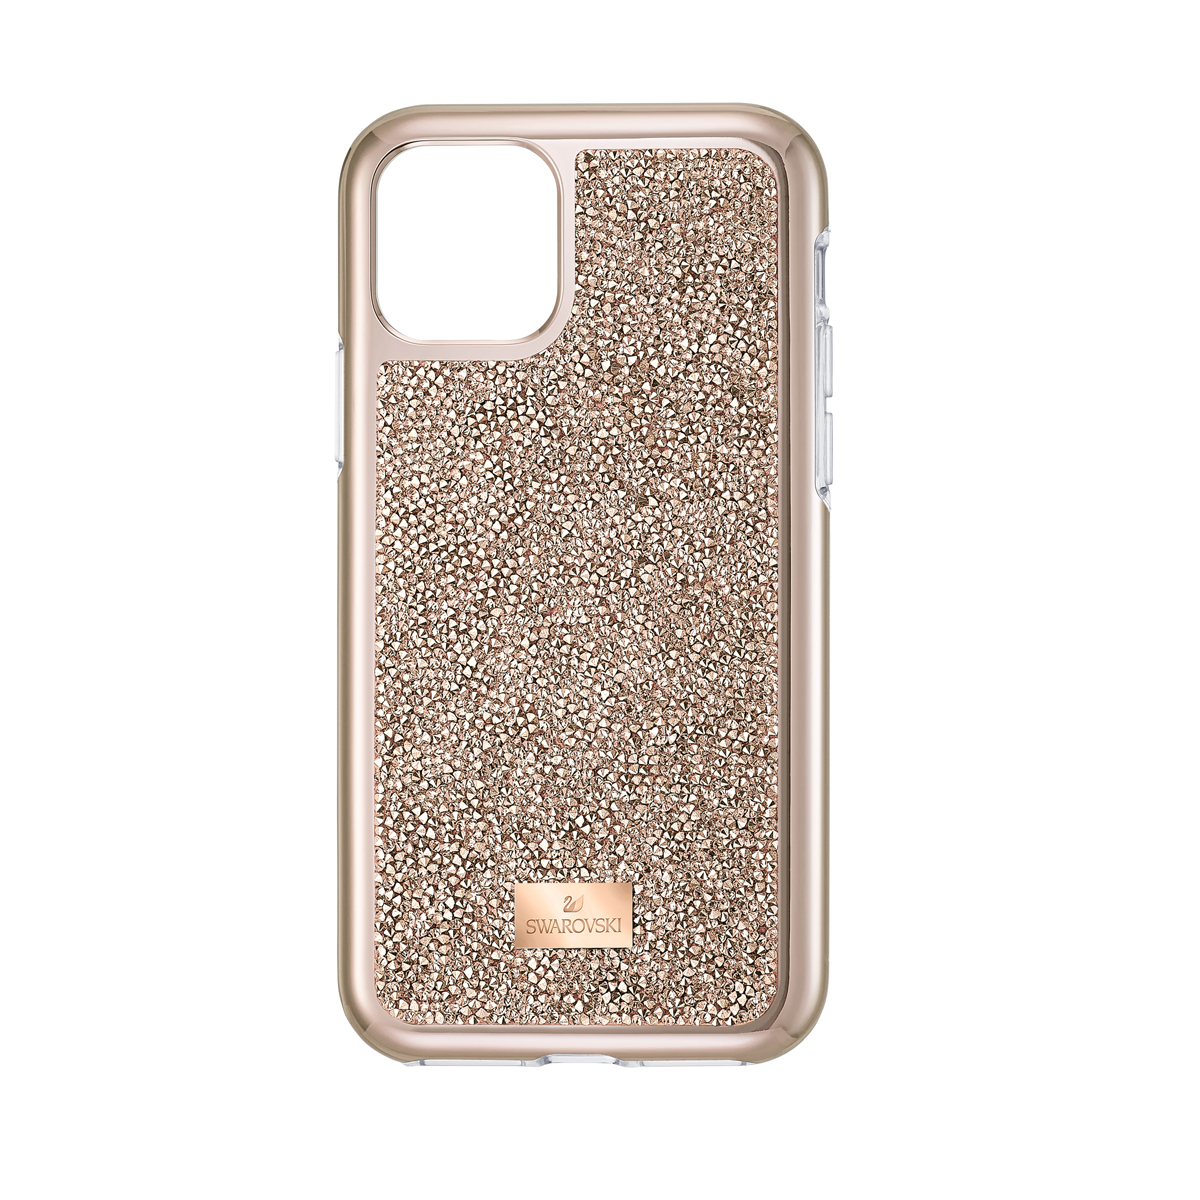 Swarovski Mobile Phone Case Glam Rock iPhone 11 Pro Case Rose Gold Stainless Steel Shiny Pro